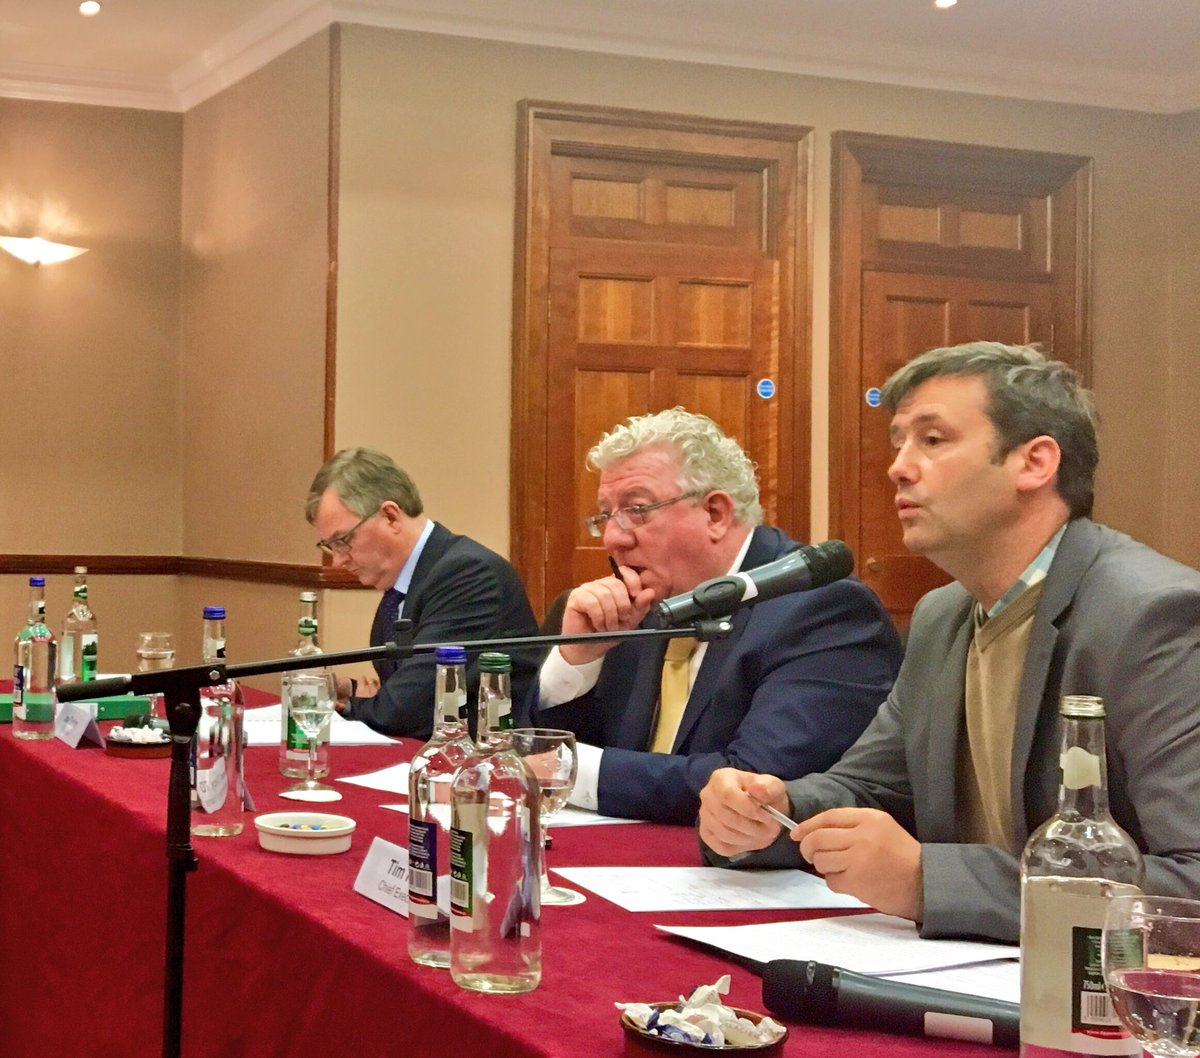 Min @MichaelDarcy fielding Q&A on #InsuranceReform with @IHFcomms national council earlier today